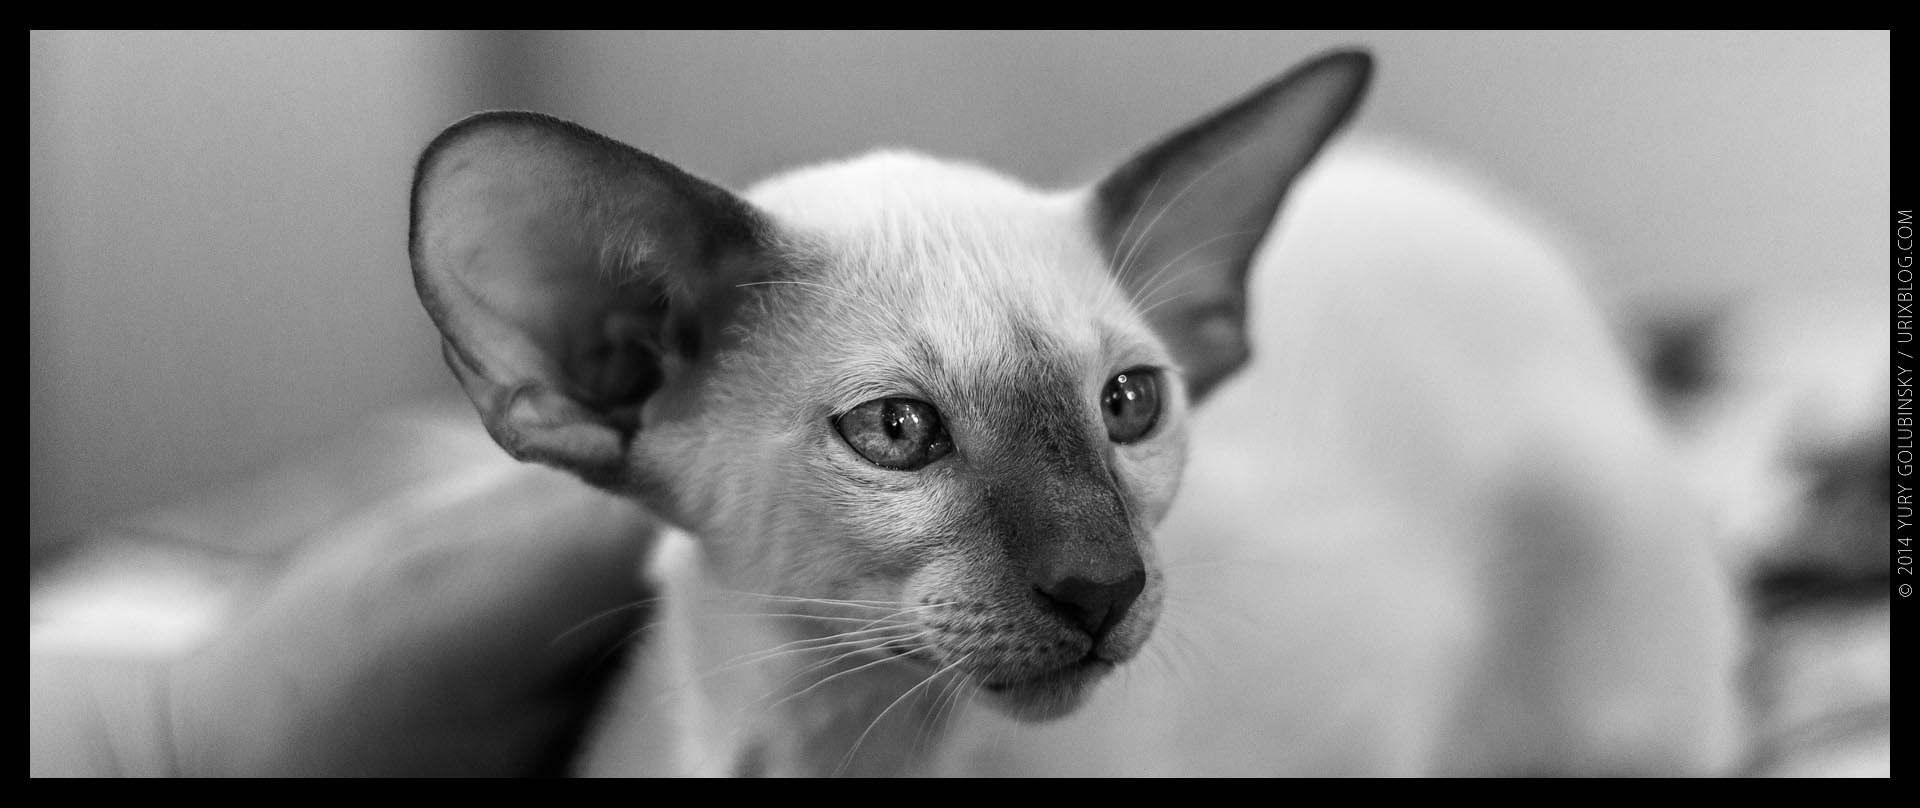 2014, InfoKot exhibition, cat, BW, black and white, panorama, Moscow, Russia